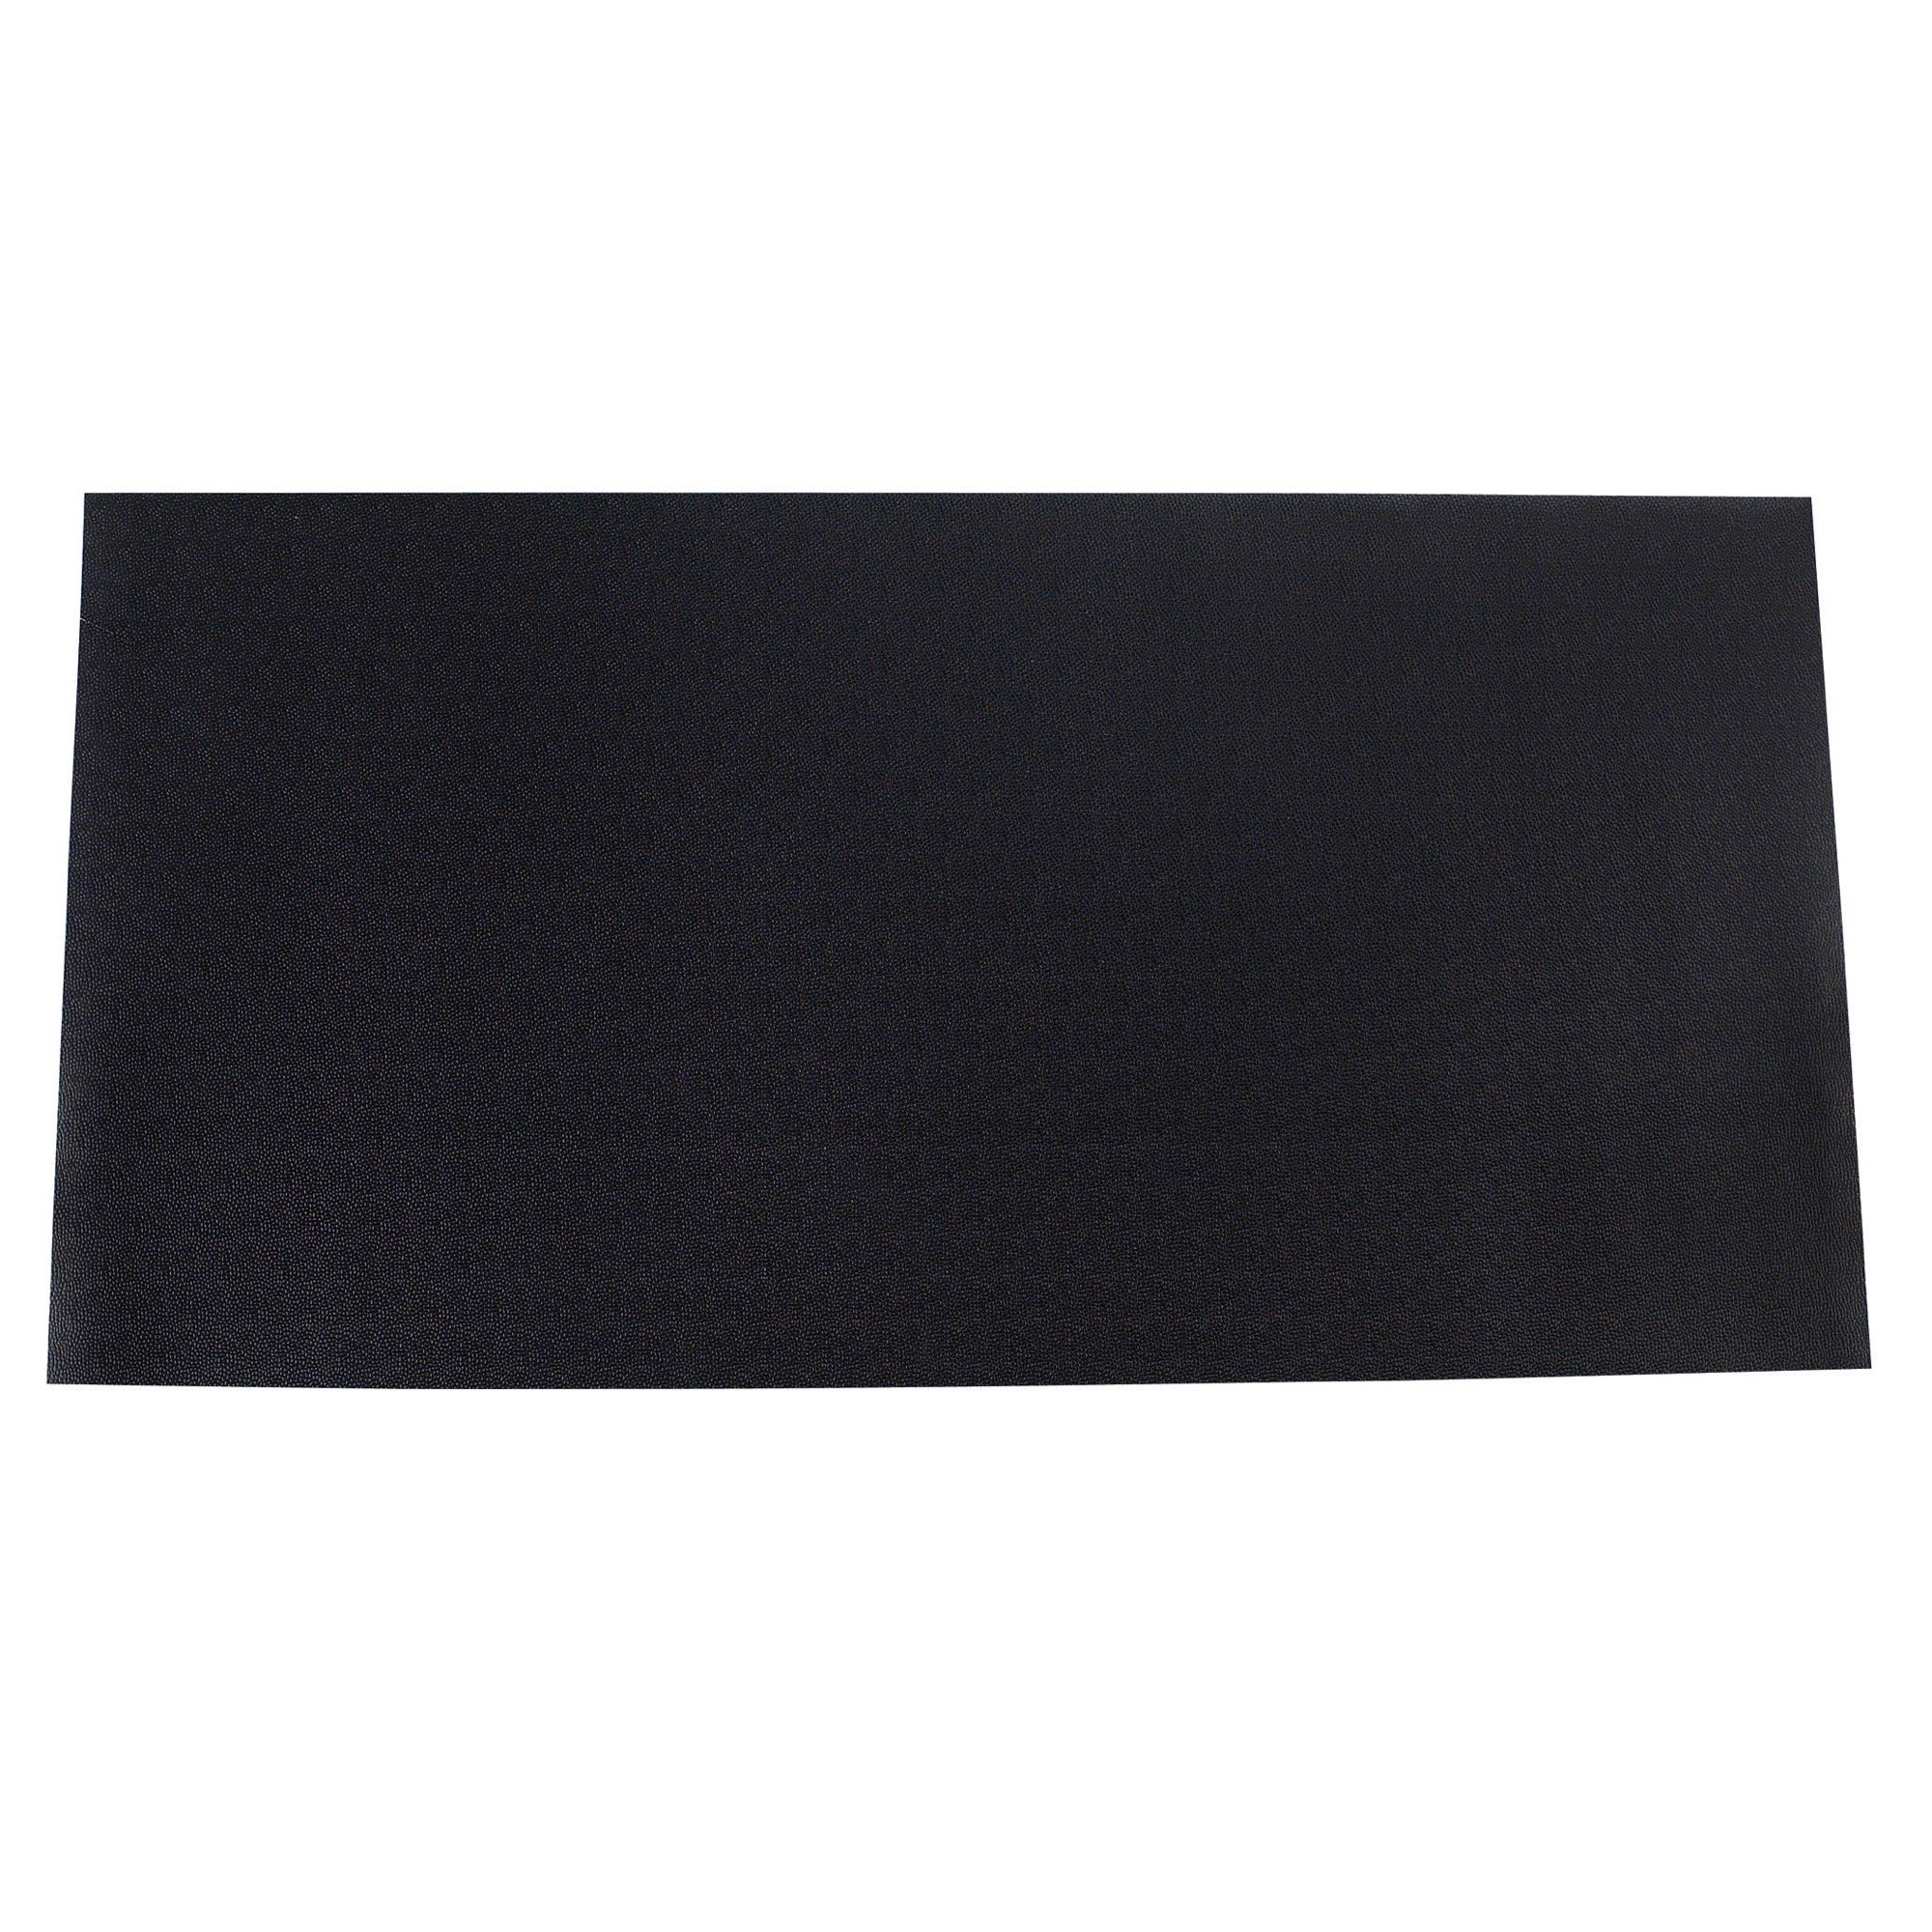 Top Performance PVC and Foam Pet Groomer's Table Mat, 24x48 Inch, Black by Top Performance